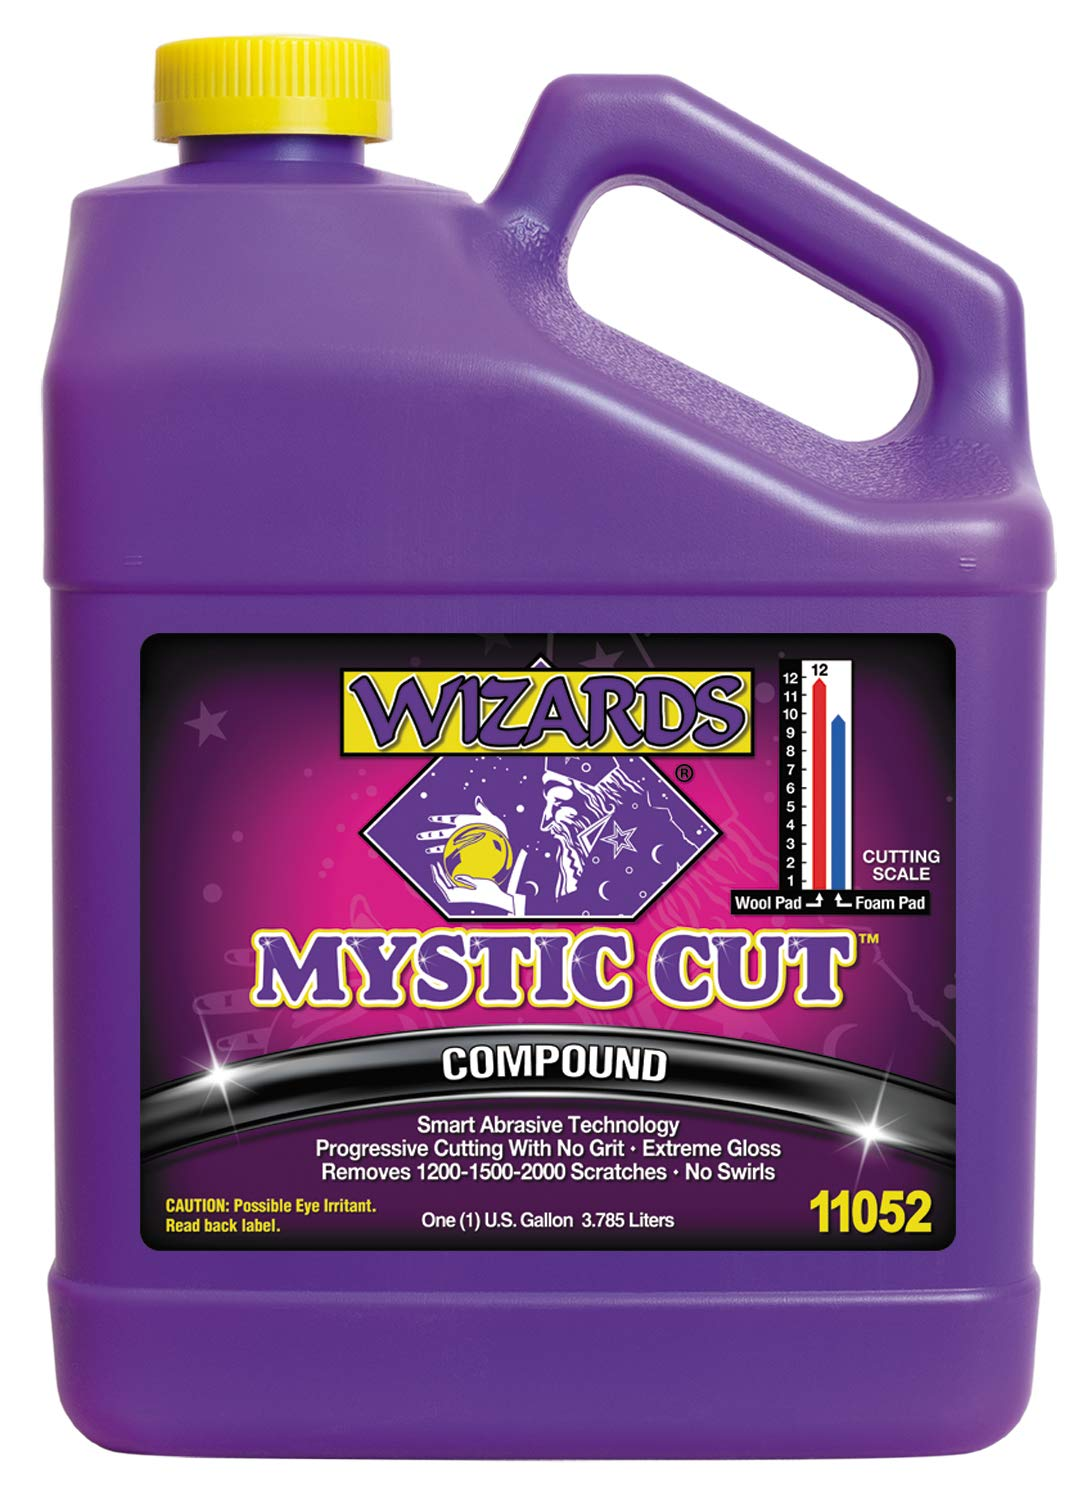 Wizards Buffing Liquid - Cutting Compounds & Polish Machine Glaze (Gallon, Mystic Cut Compound)